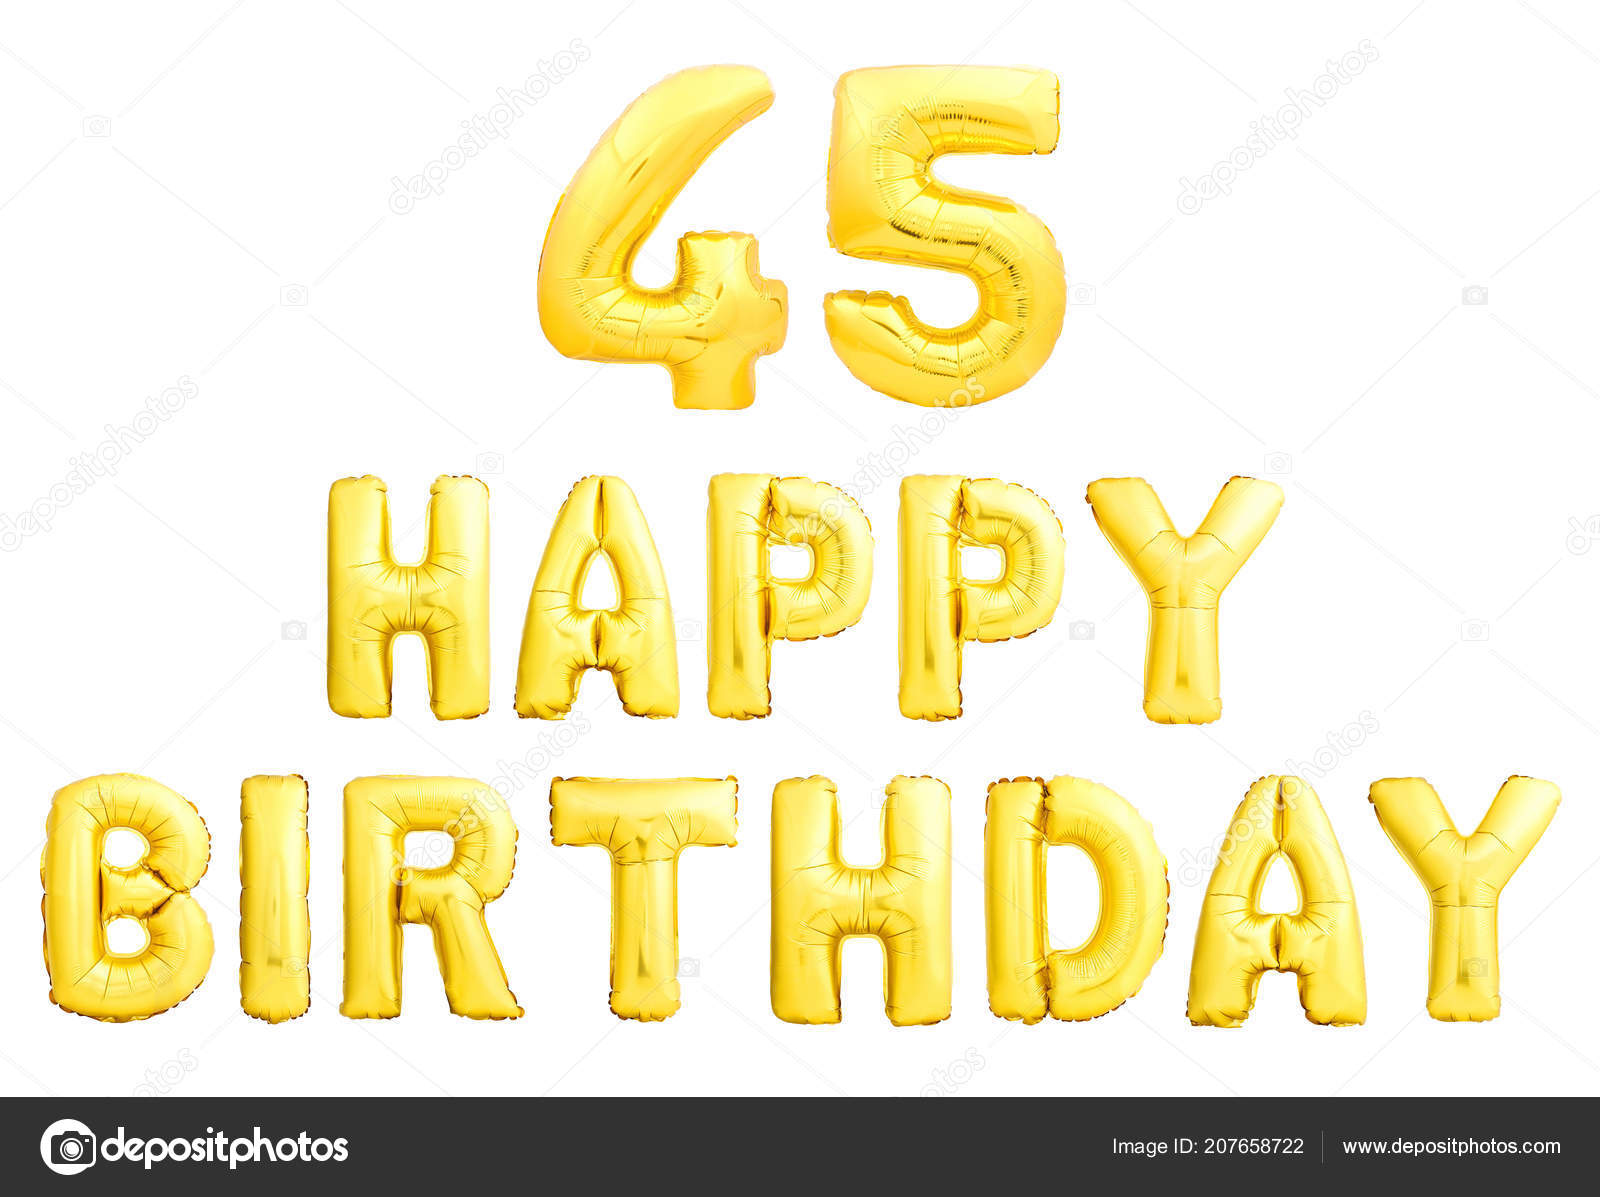 Happy Birthday 45 Years Golden Inflatable Balloons Isolated On White Background 45th Anniversary Celebration Photo By Dmitry